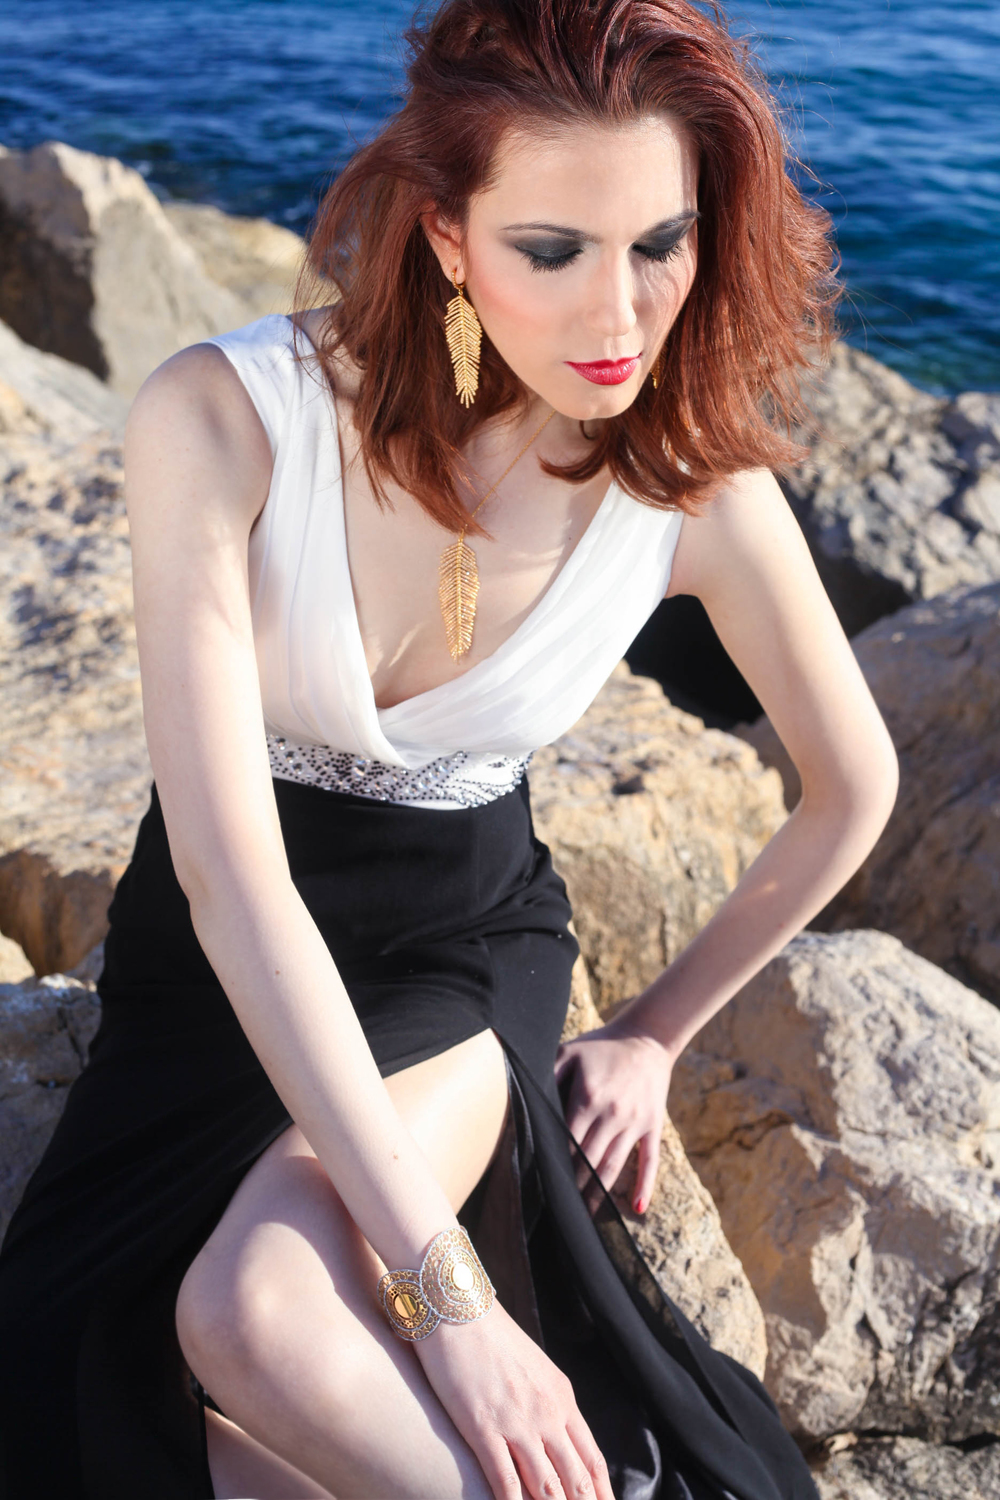 Cannes Promenade Photo Shoot May 2015 Professional Photo (94).jpg